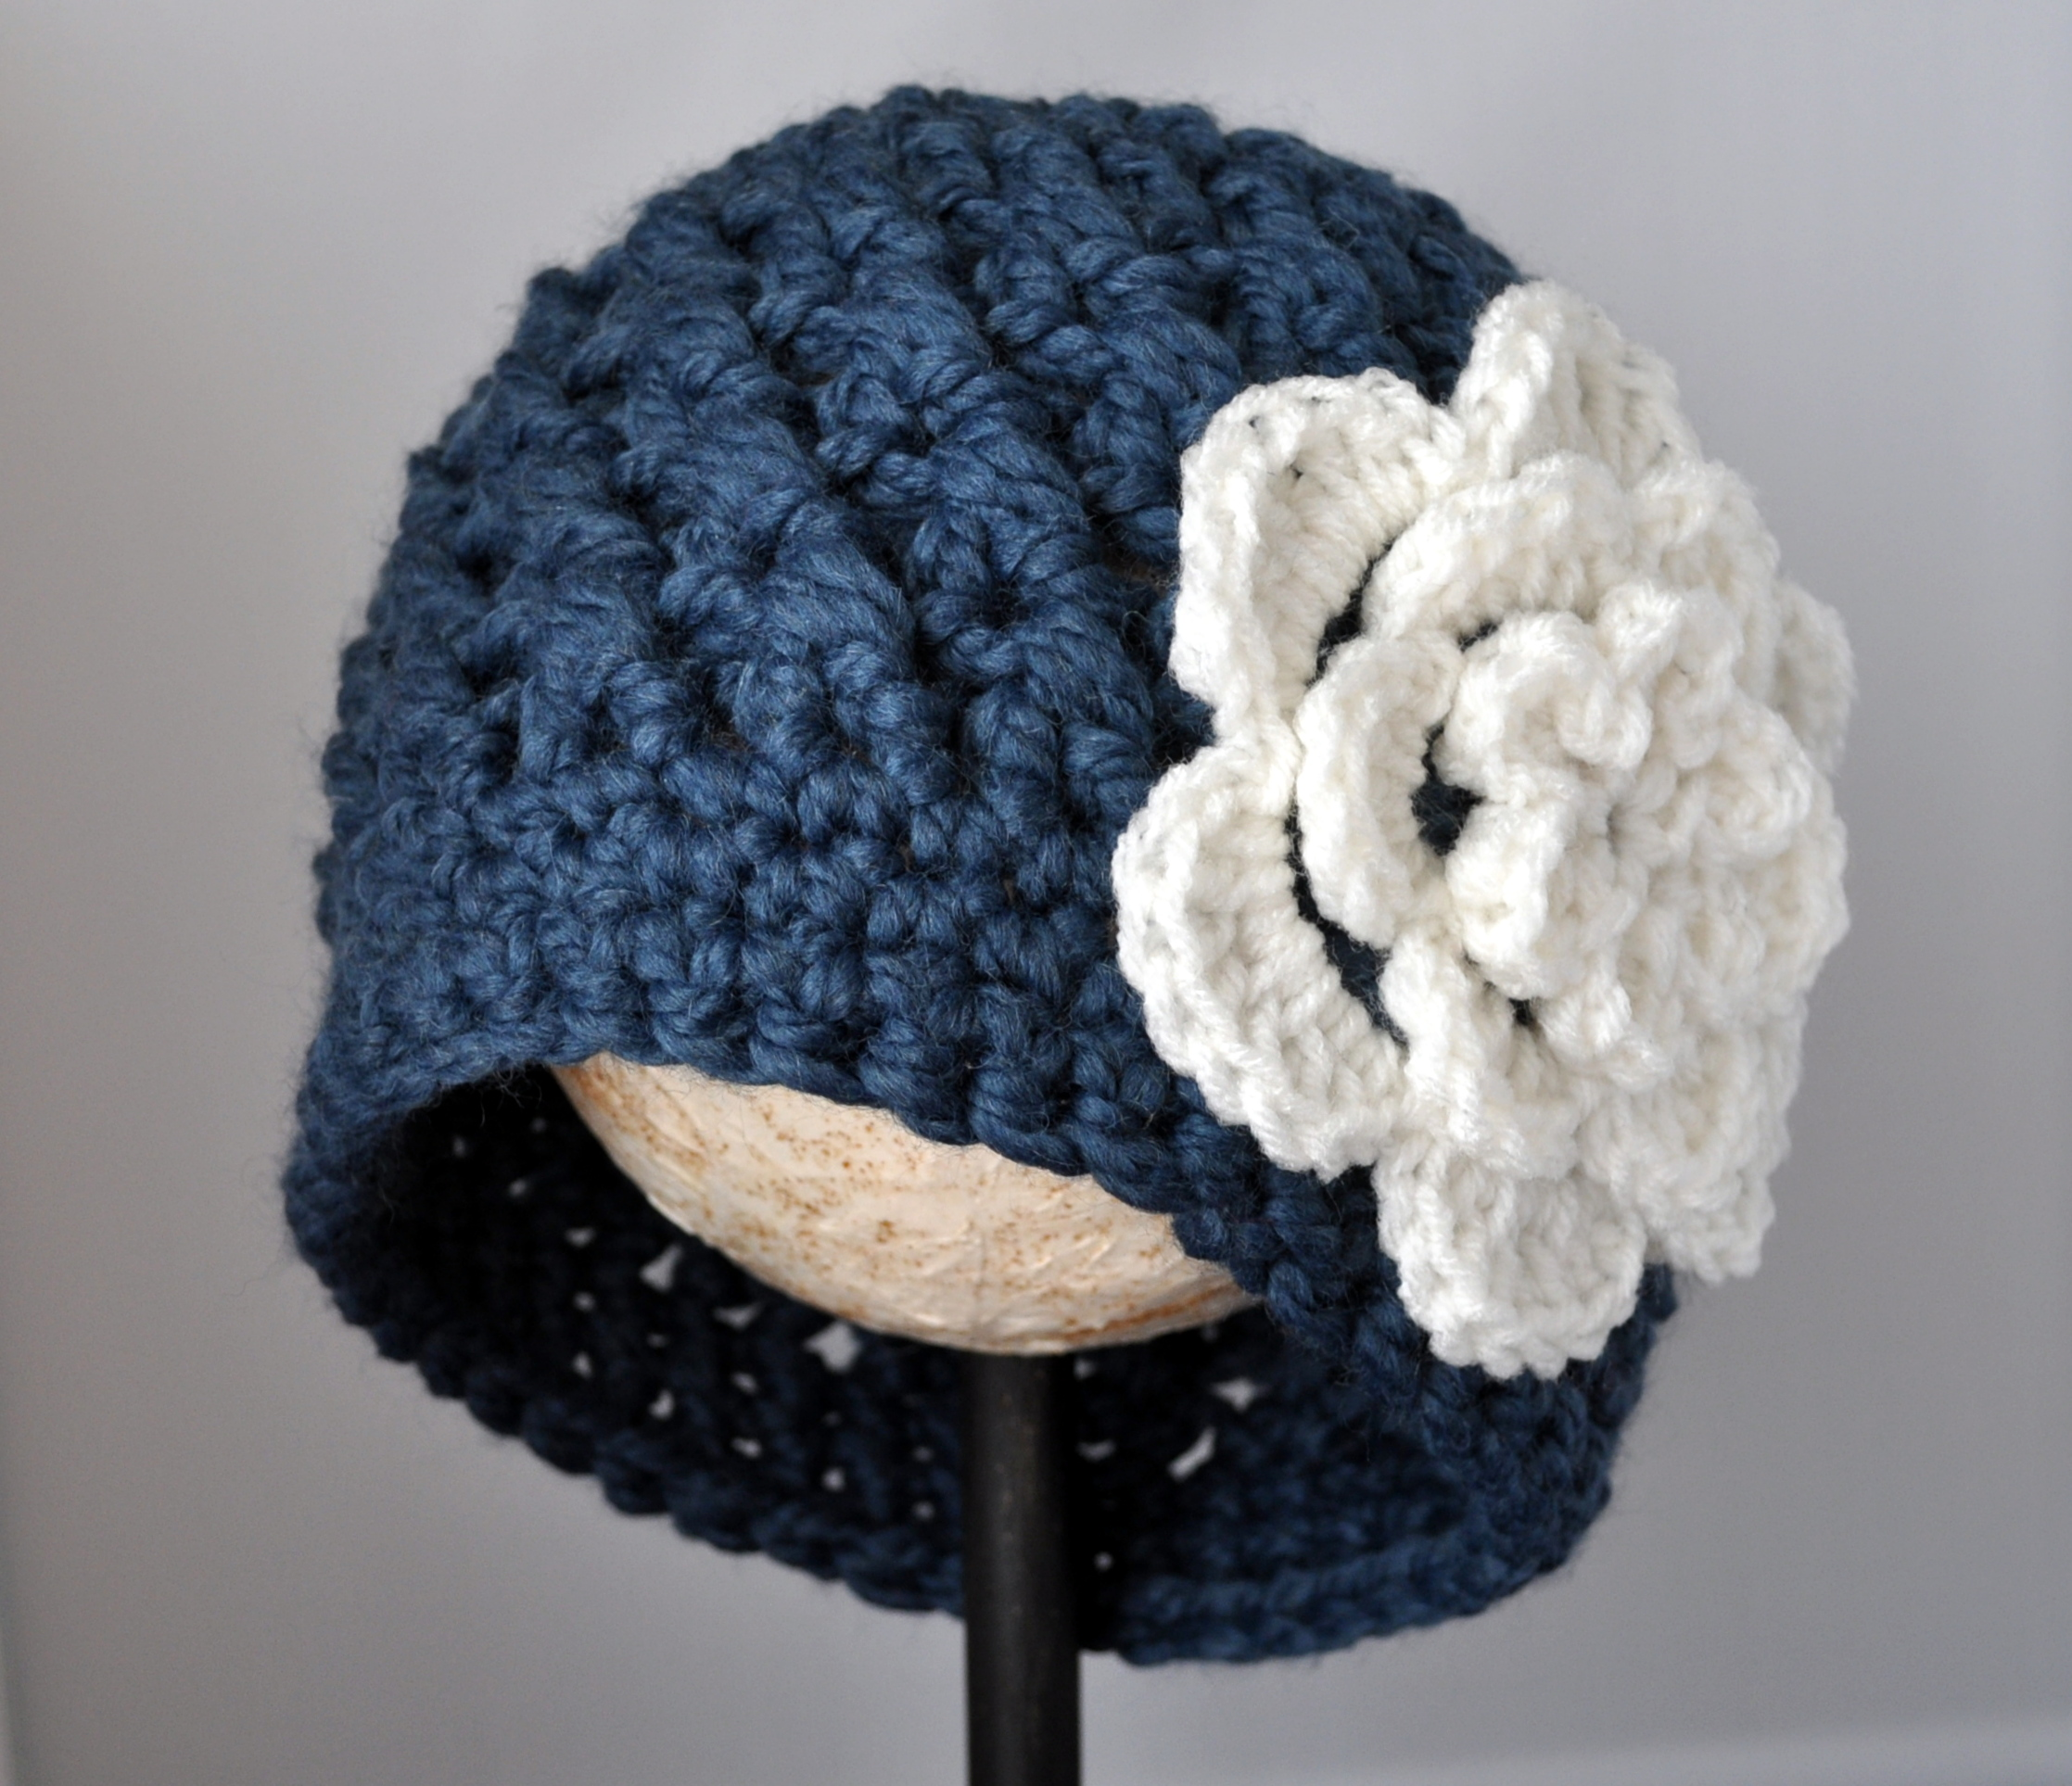 Crochet Pattern Baby Hat Bulky Yarn : Crochet Chunky Flowered Cloche Pattern Classy Crochet